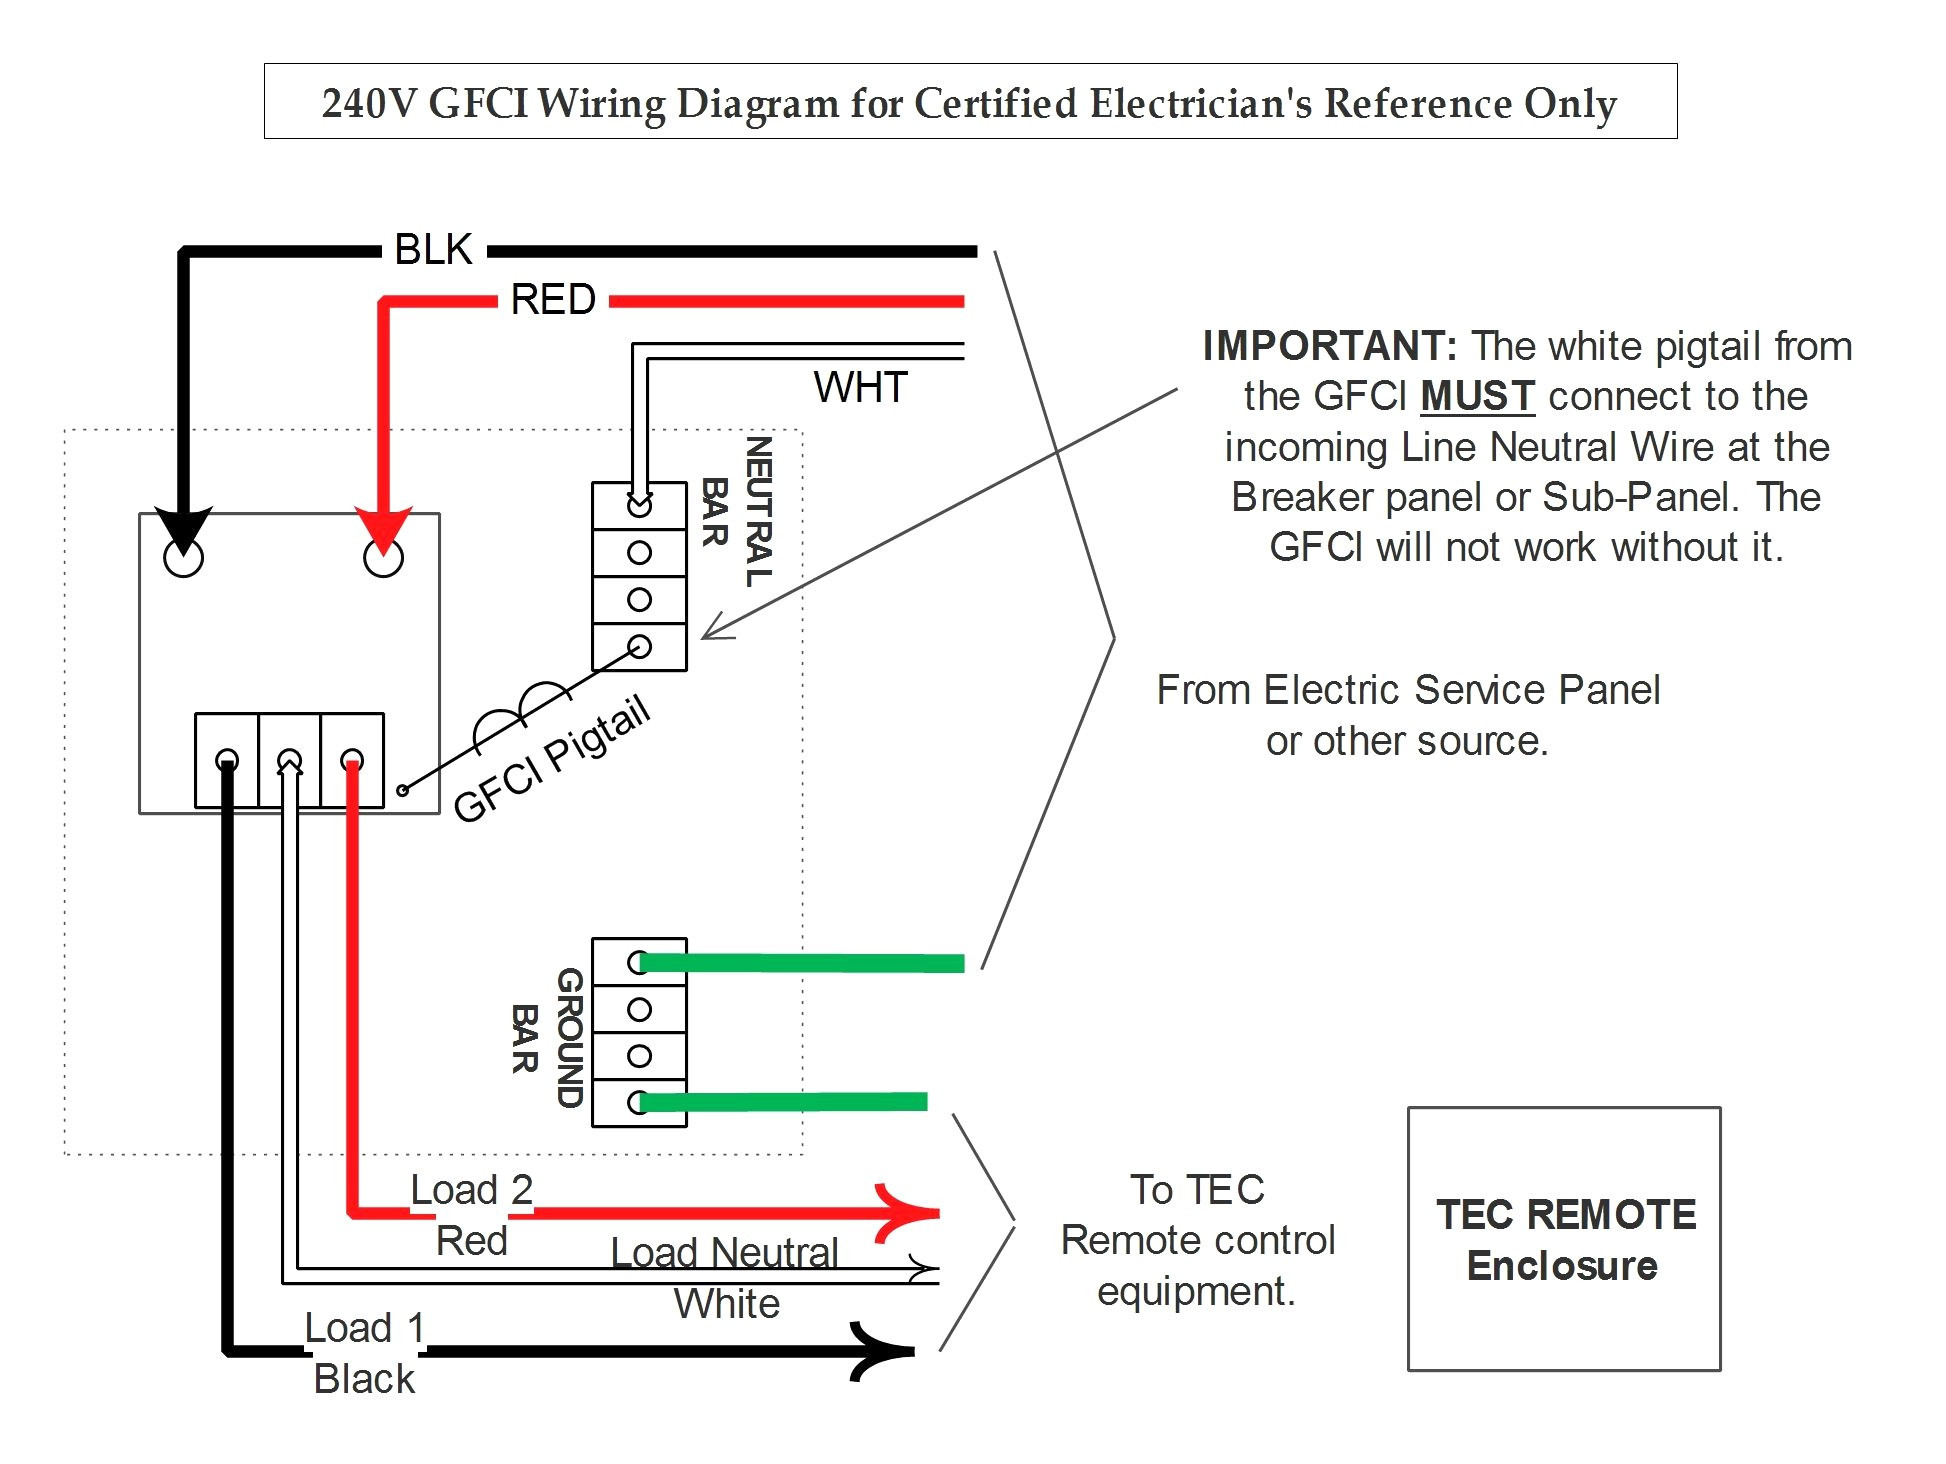 shaw box hoist wiring diagram Collection-Box Hoist 800 Wiring Diagram Get Free Image About Wiring Diagram Shaw Box Hoist Wiring 6-t